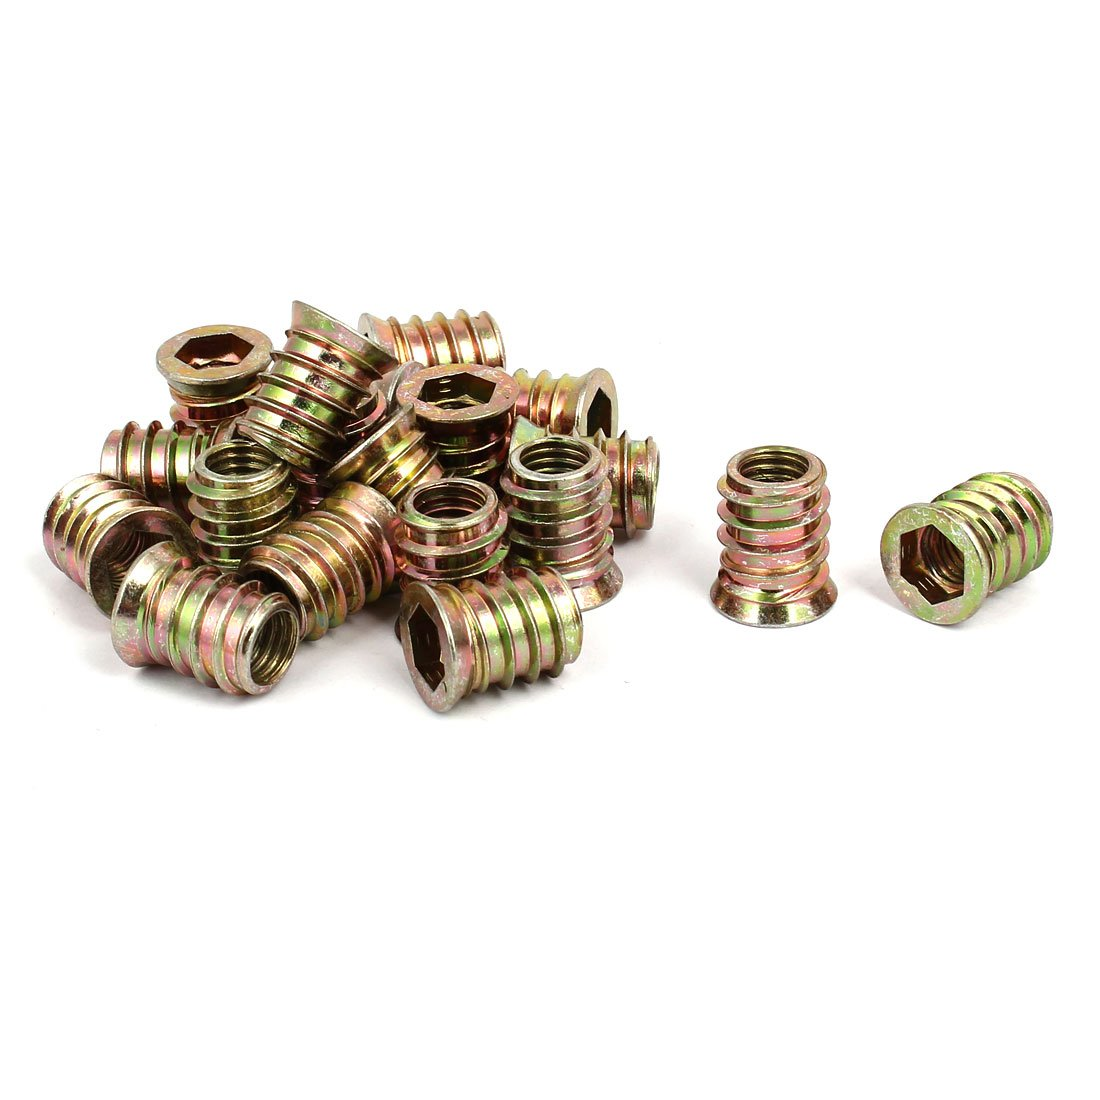 uxcell Wood Furniture M10x20mm Insert Interface Hex Socket E-Nut Bronze Tone 20pcs by uxcell